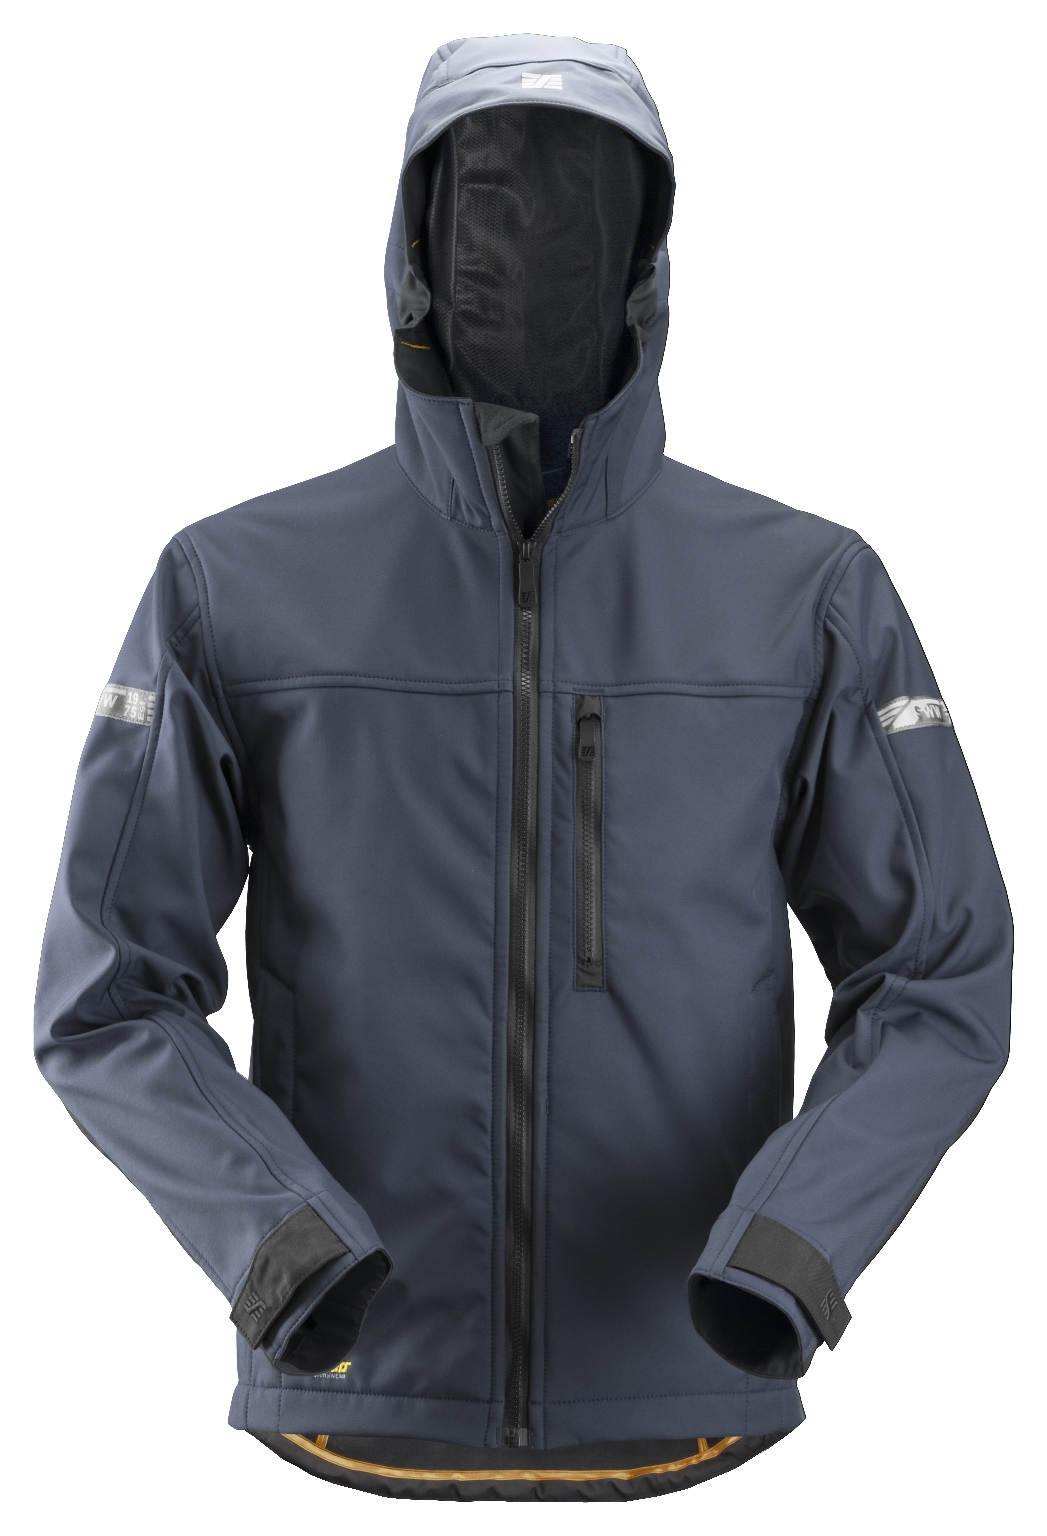 Snickers Allroundwork 1229 - softshell à capuche